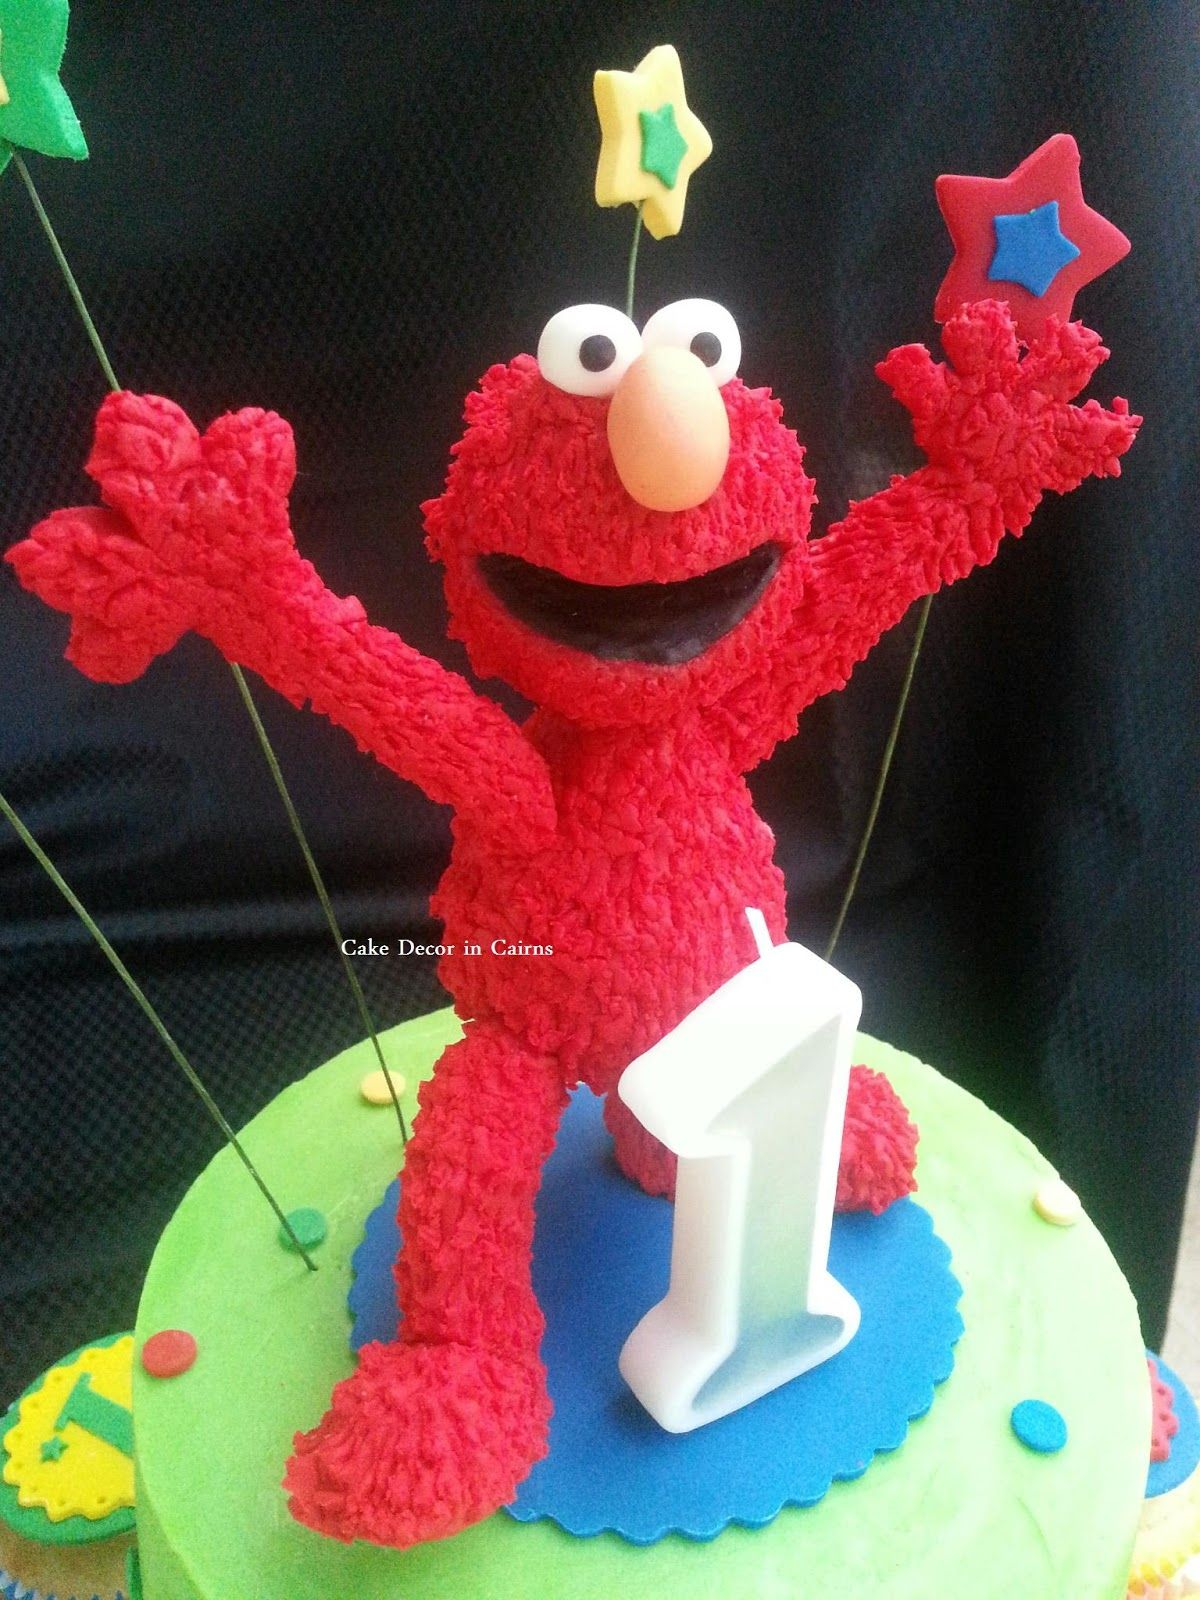 How I made My Fondant Elmo Cake Topper mini photo tutorial